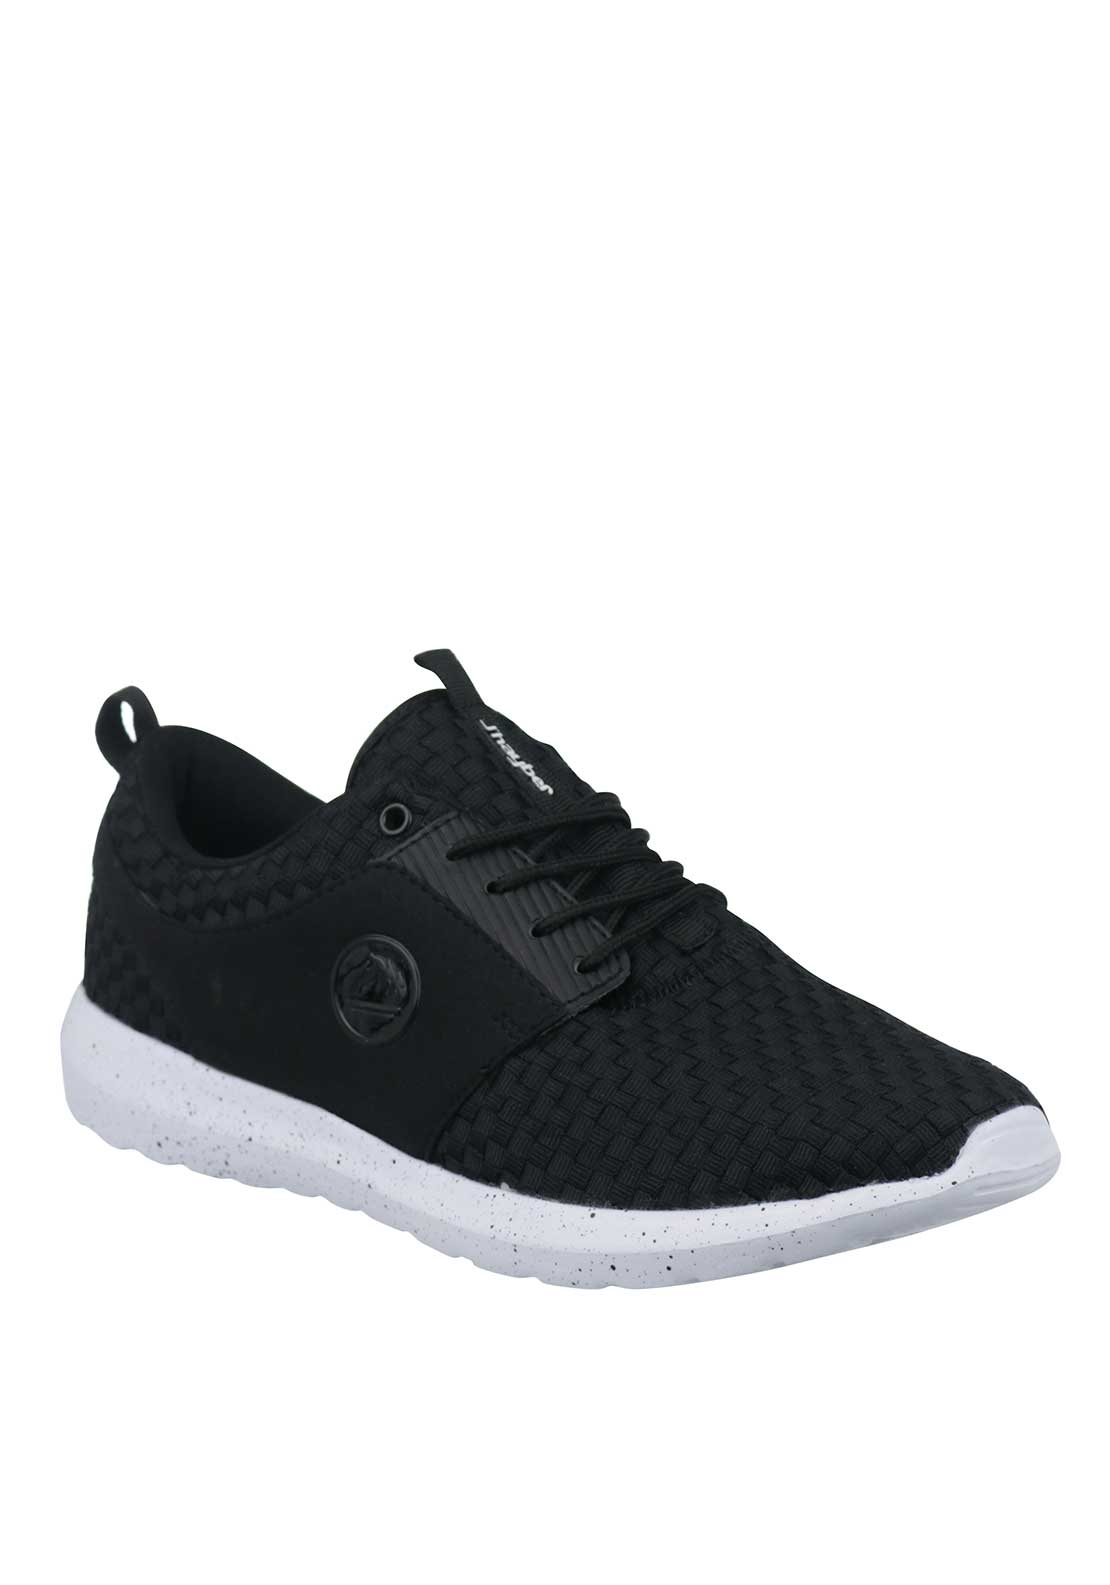 J'hayber Mens Chaforo Woven Trainers, Black